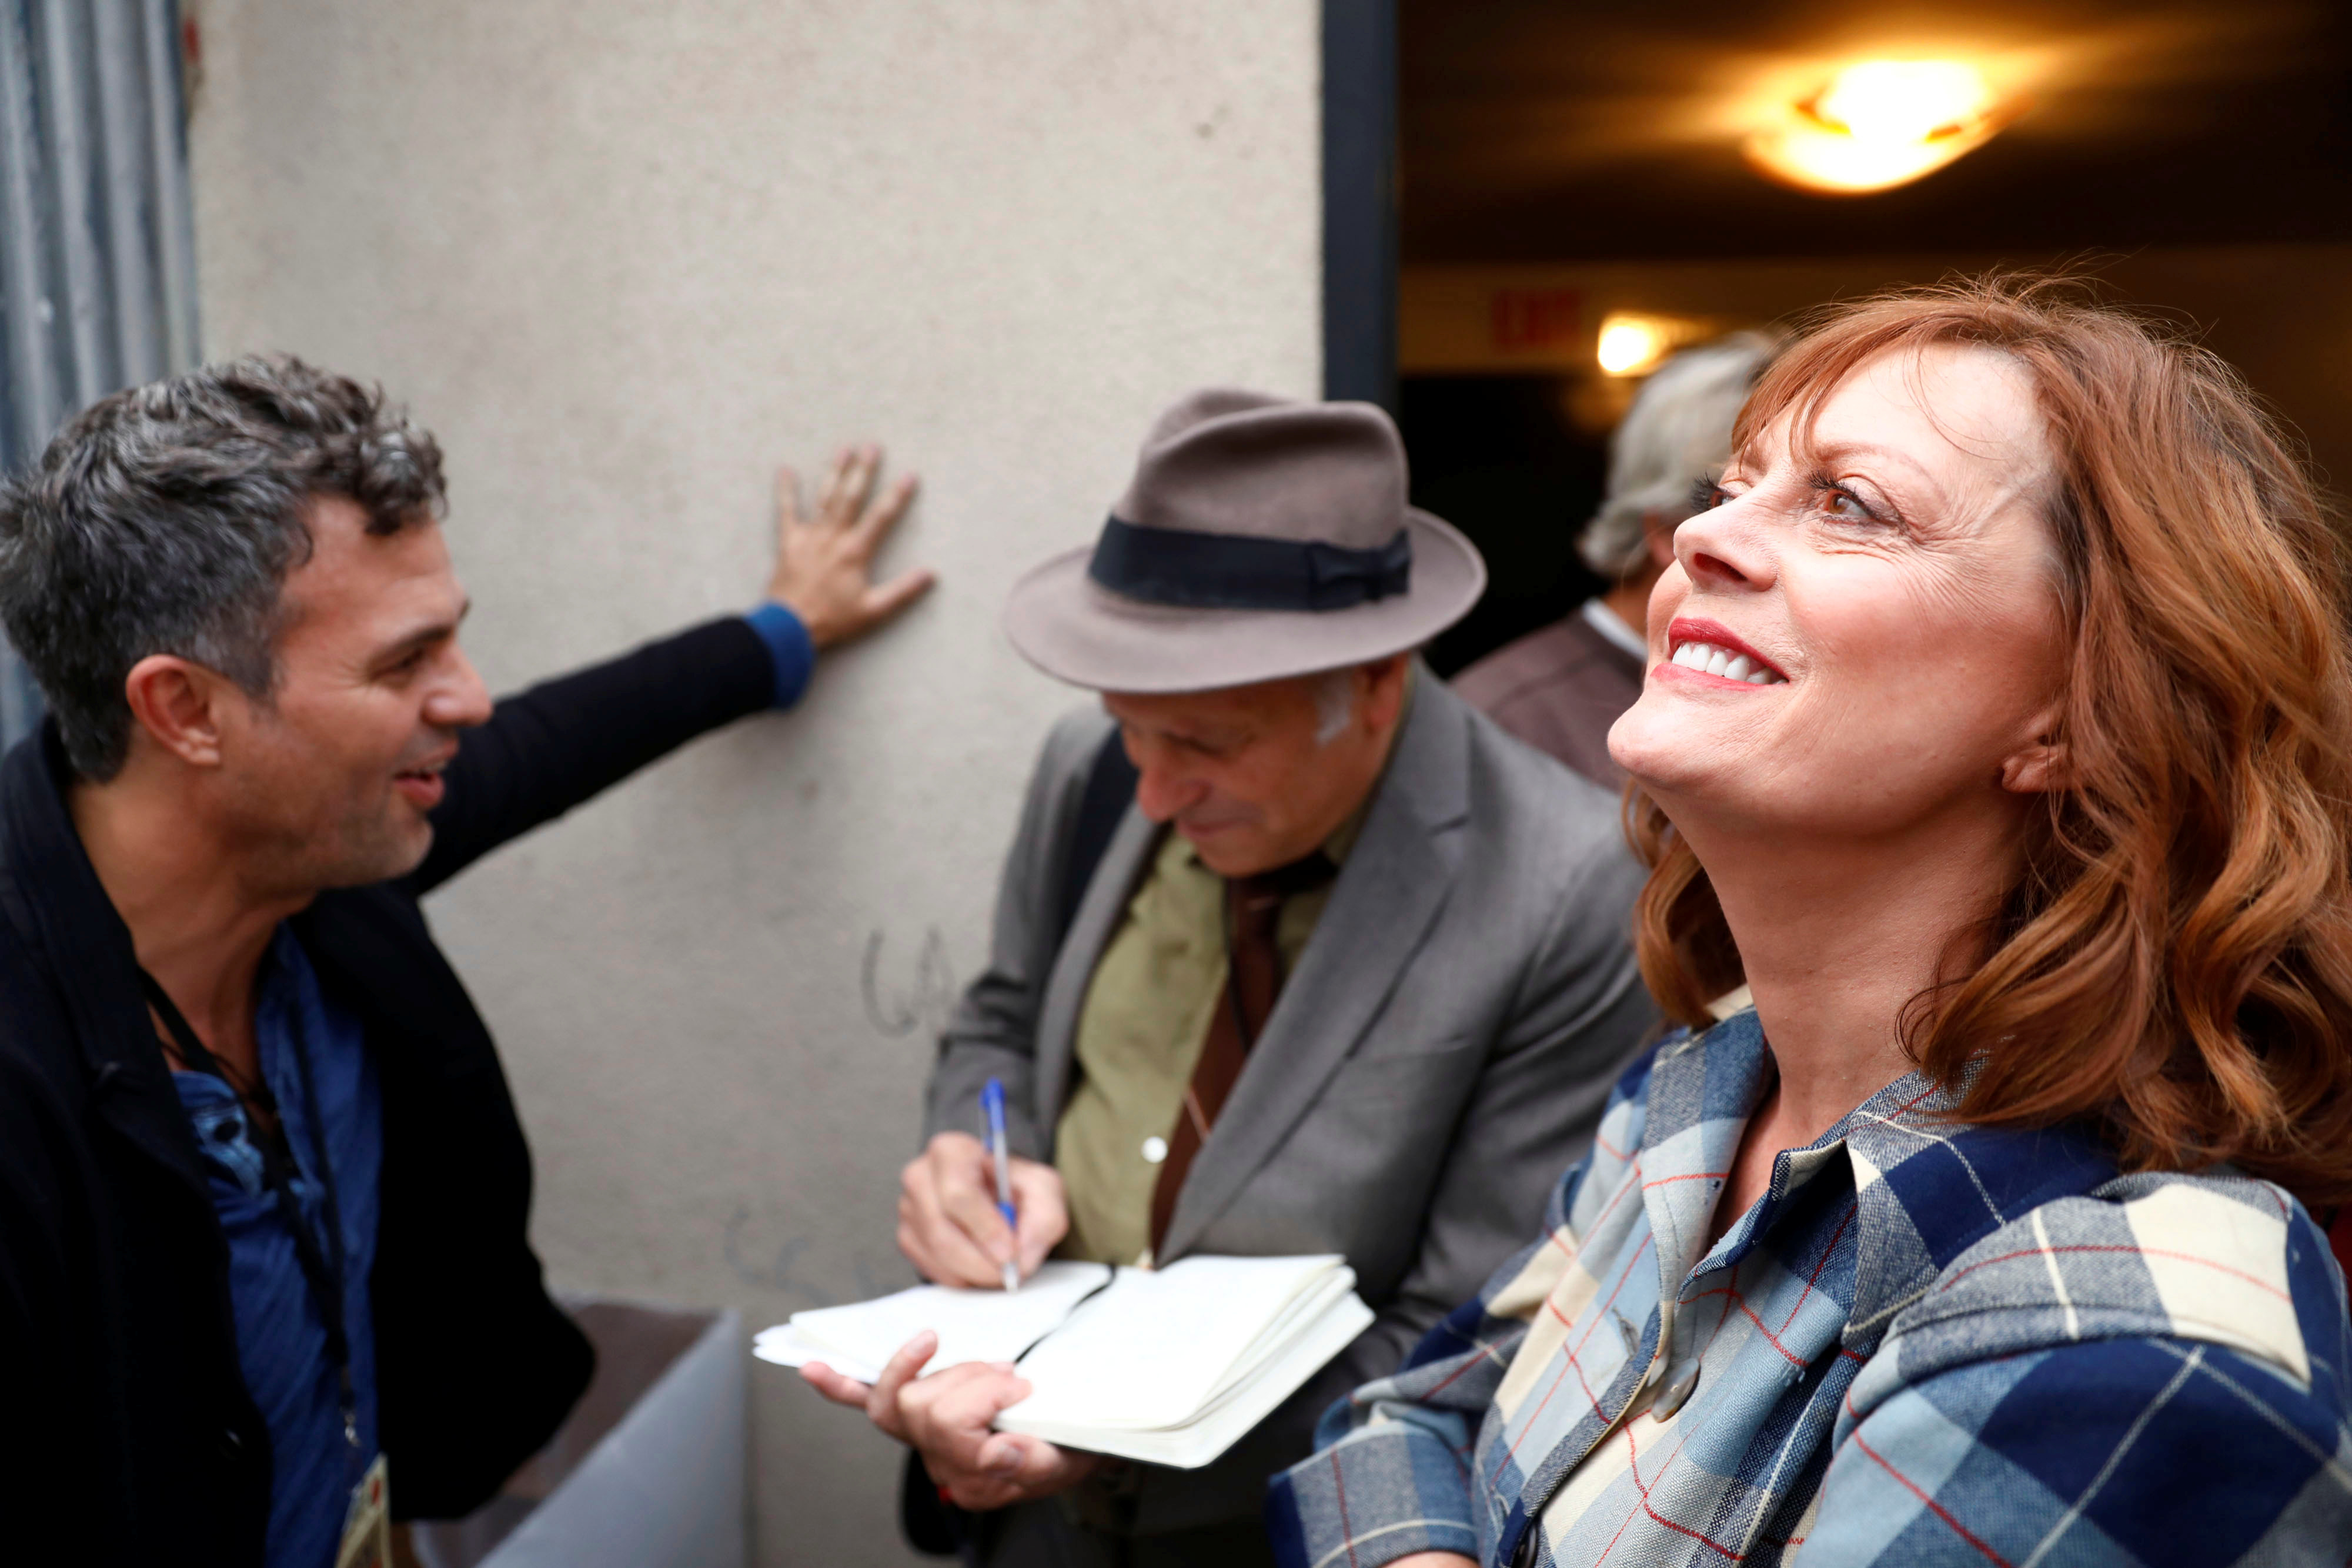 Actor Susan Sarandon smiles during an interview with author Greg Palast and Mark Ruffalo backstage at a climate change rally in solidarity with protests of the pipeline in North Dakota at MacArthur Park in Los Angeles, California